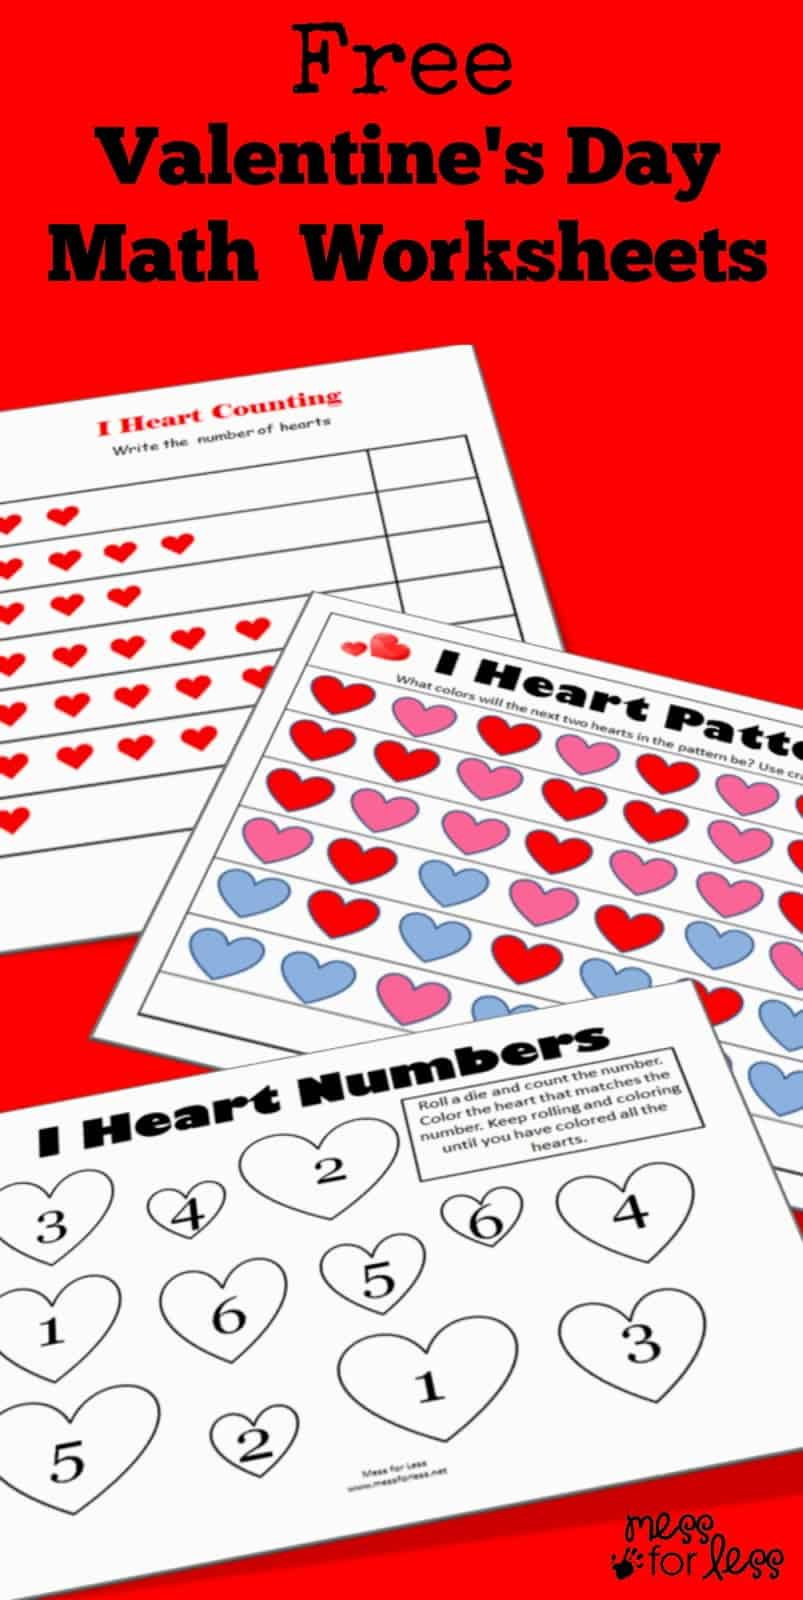 valentines math  kindergarten worksheets  mess for less free valentines day math  kindergarten worksheets   worksheets to  download for free